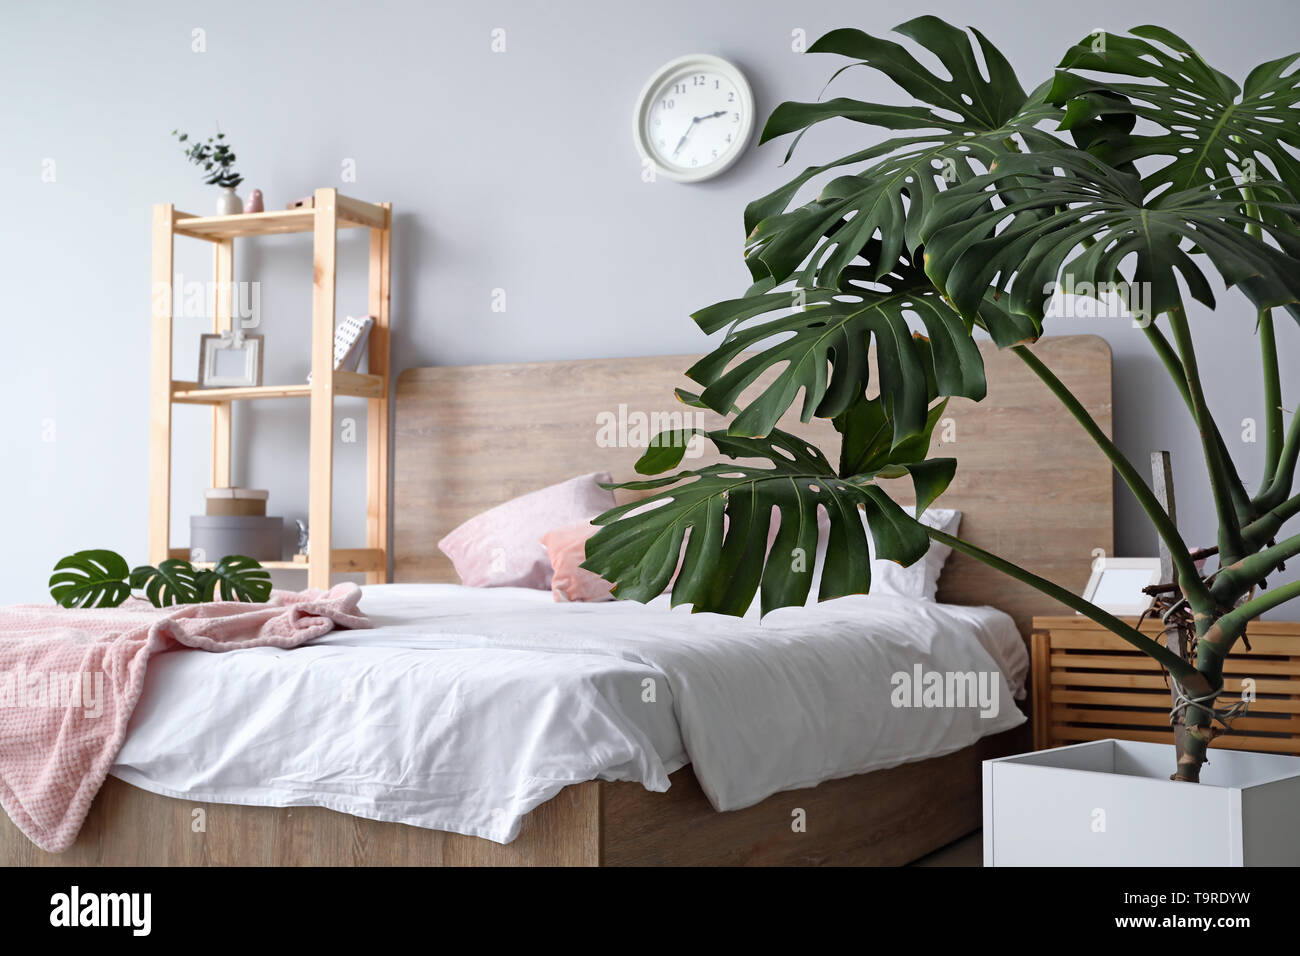 Green Tropical Plant In Interior Of Bedroom Stock Photo Alamy